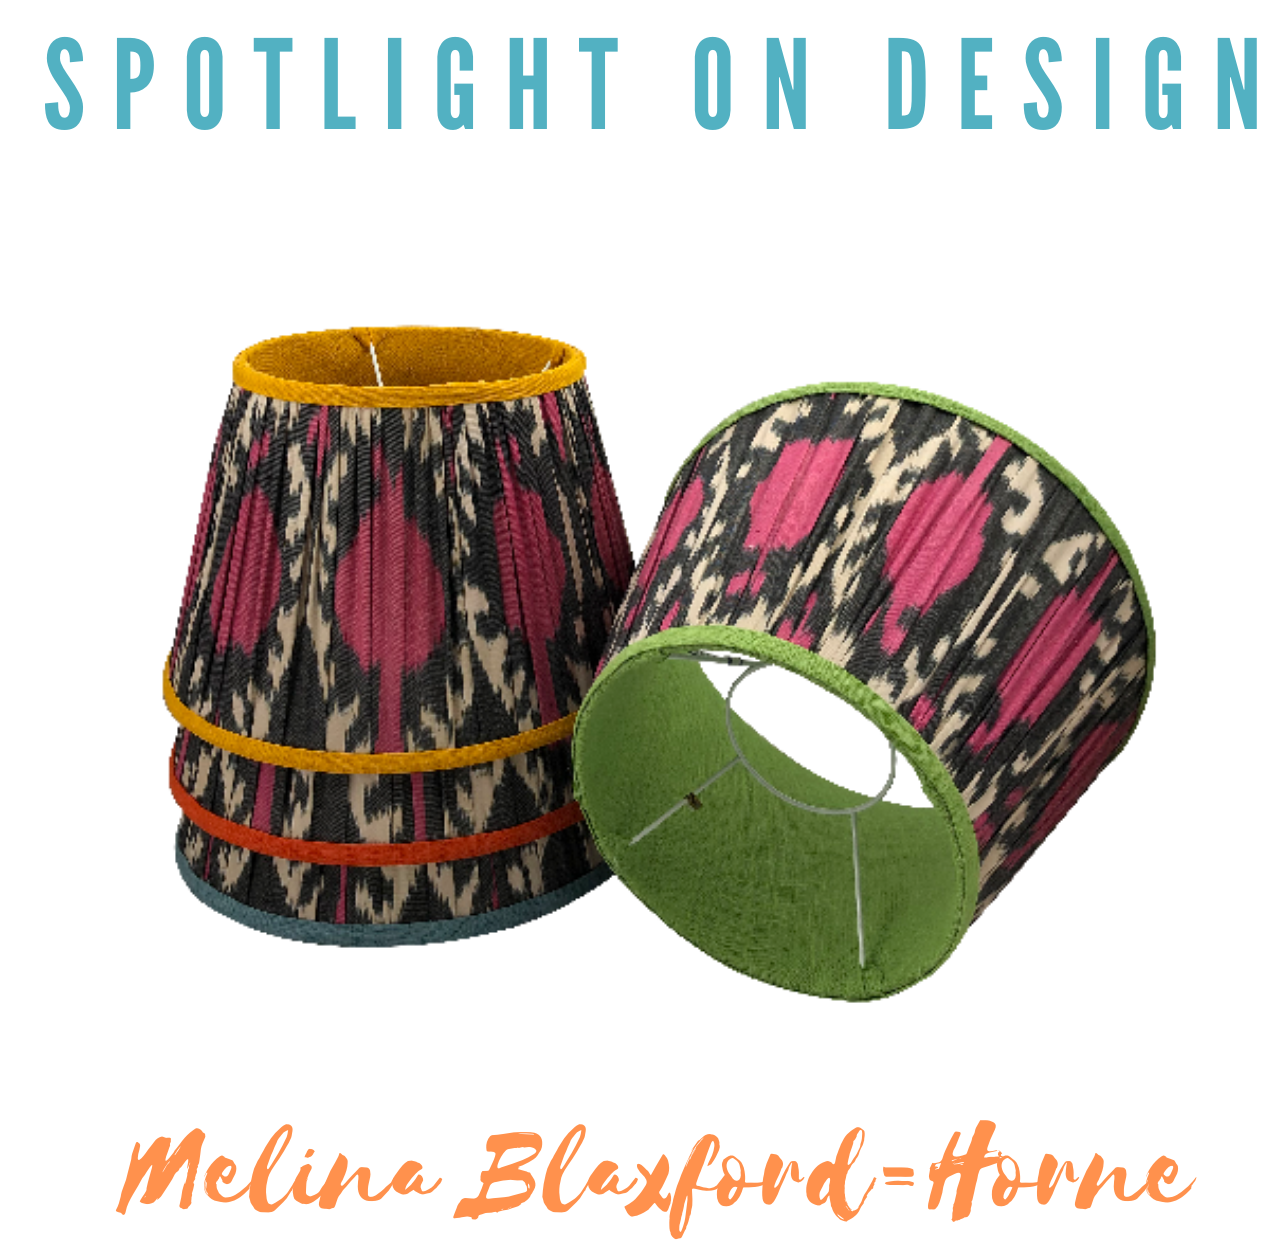 Spotlight on Design: Melina Blaxland-Horne of Melodi Horne